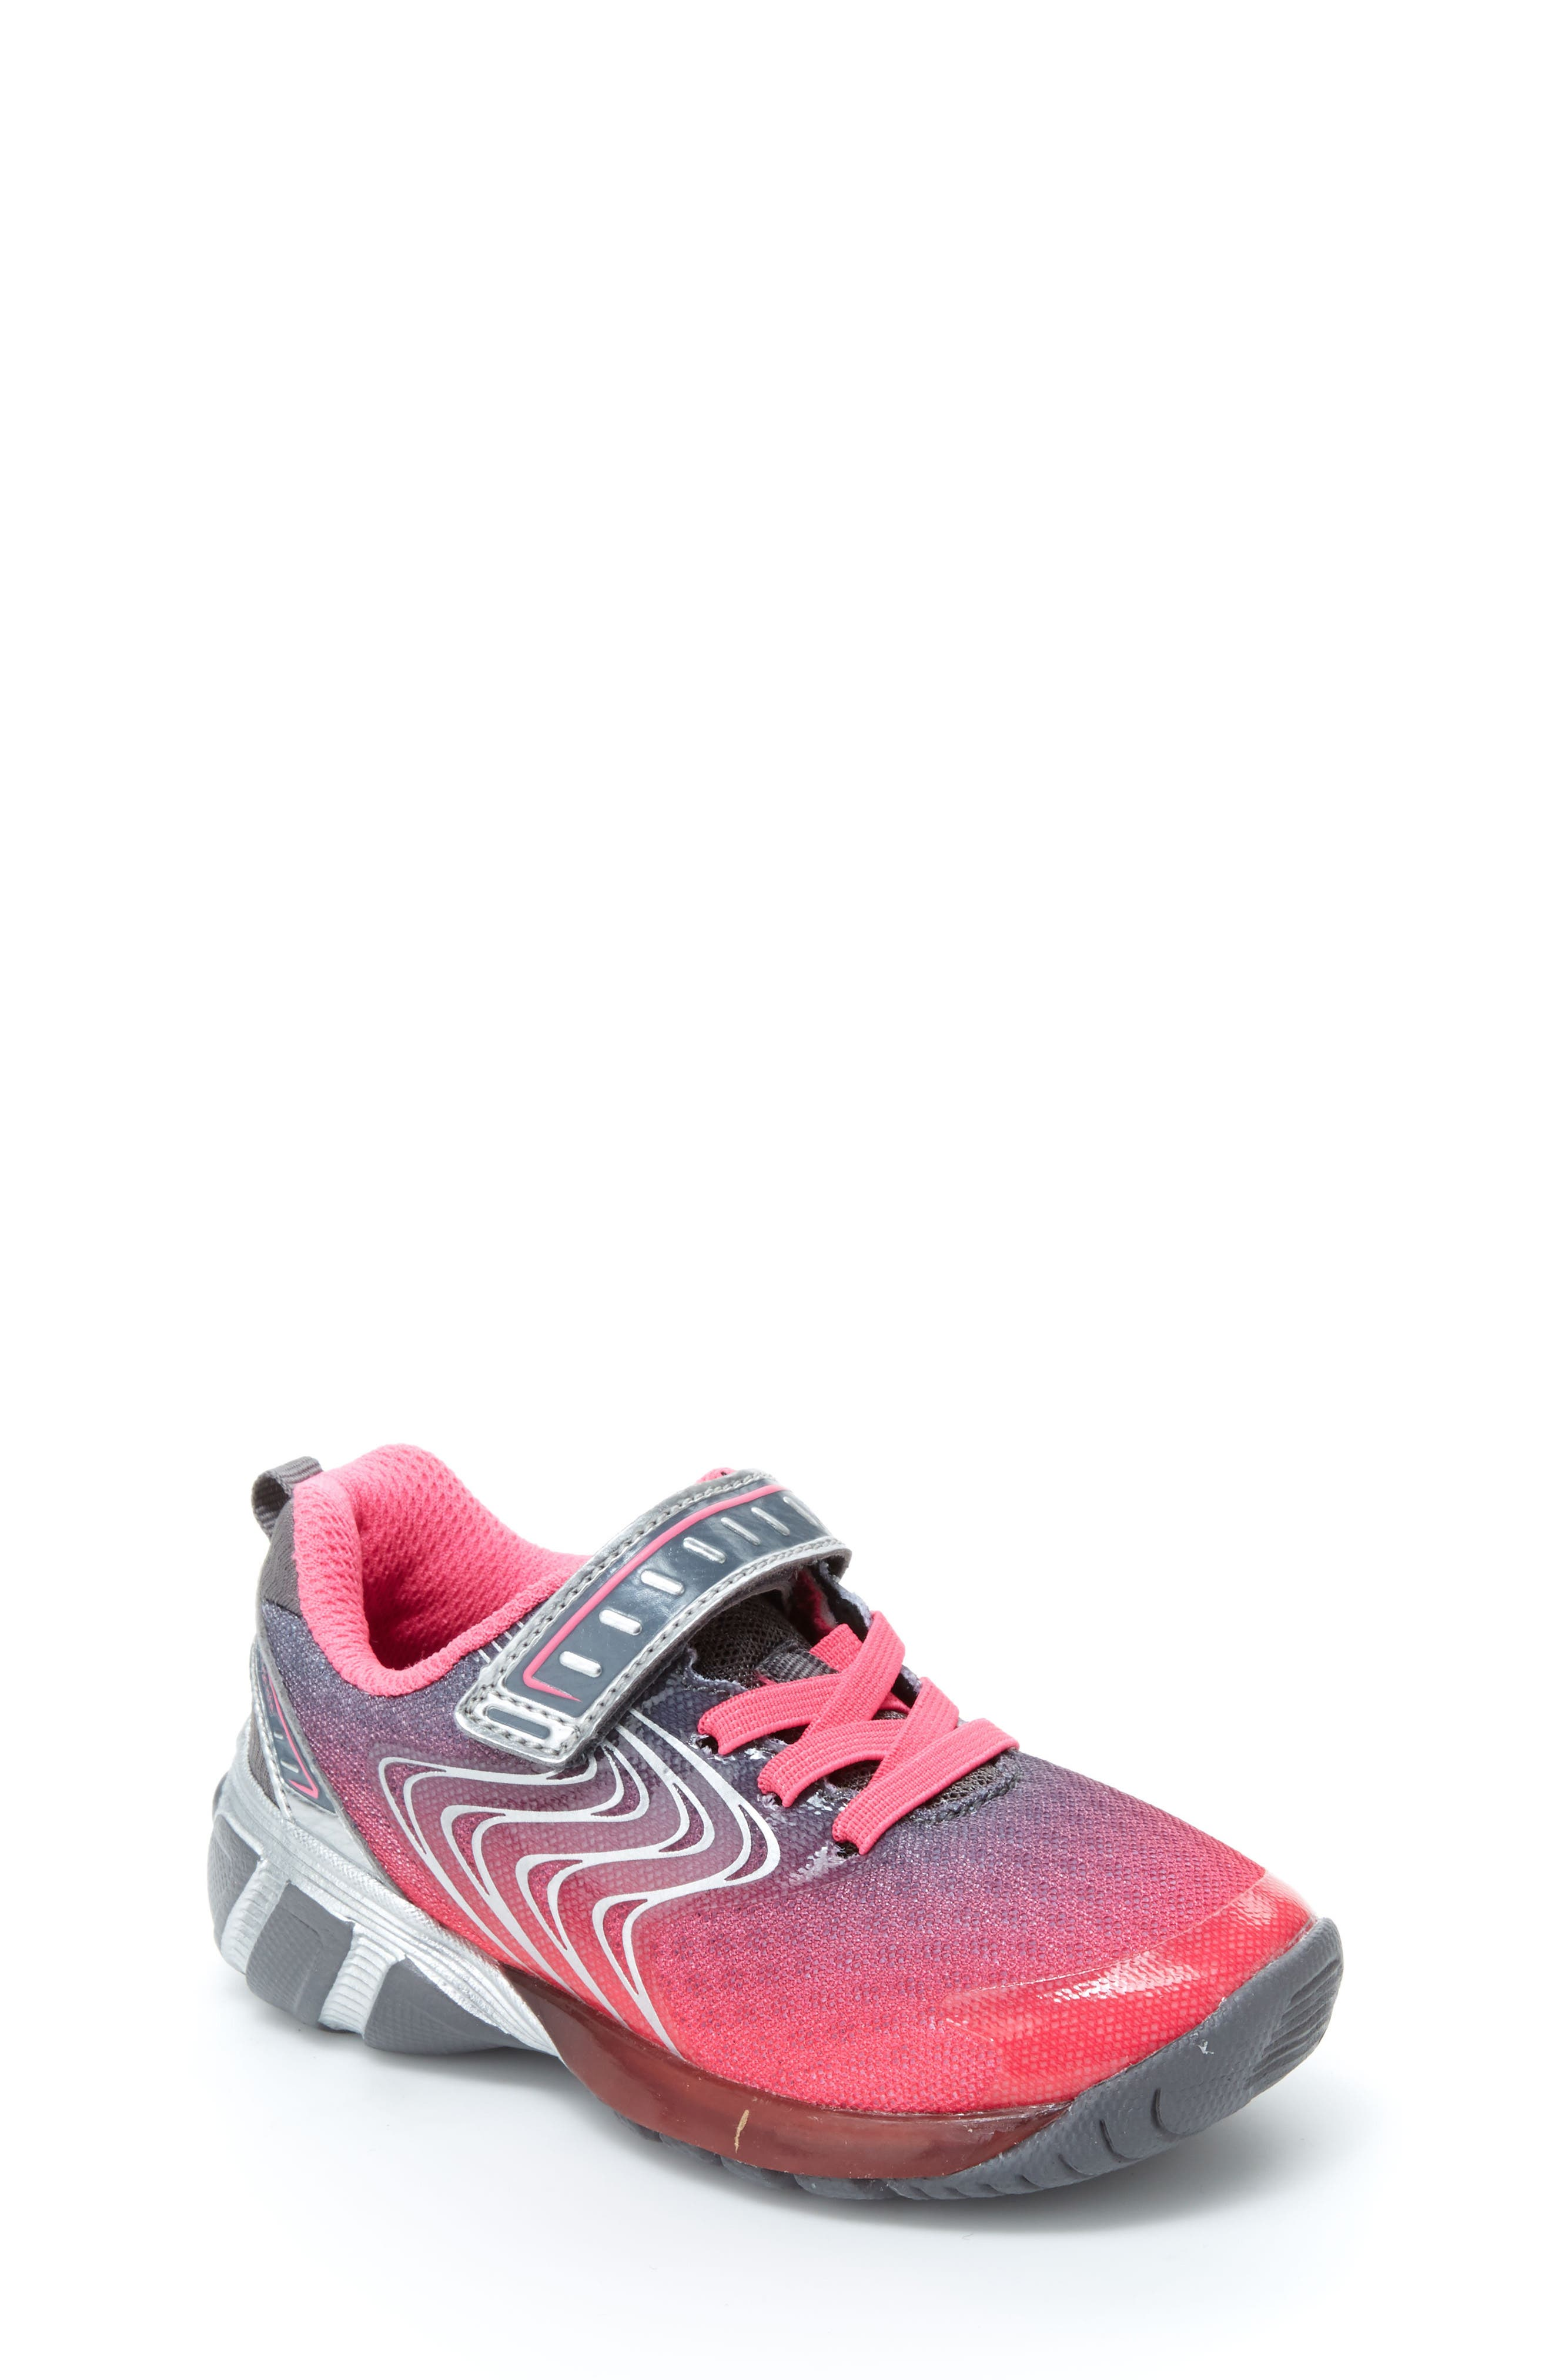 Lights Lux Light-Up Sneaker,                         Main,                         color, PINK SYNTHETIC/ TEXTILE